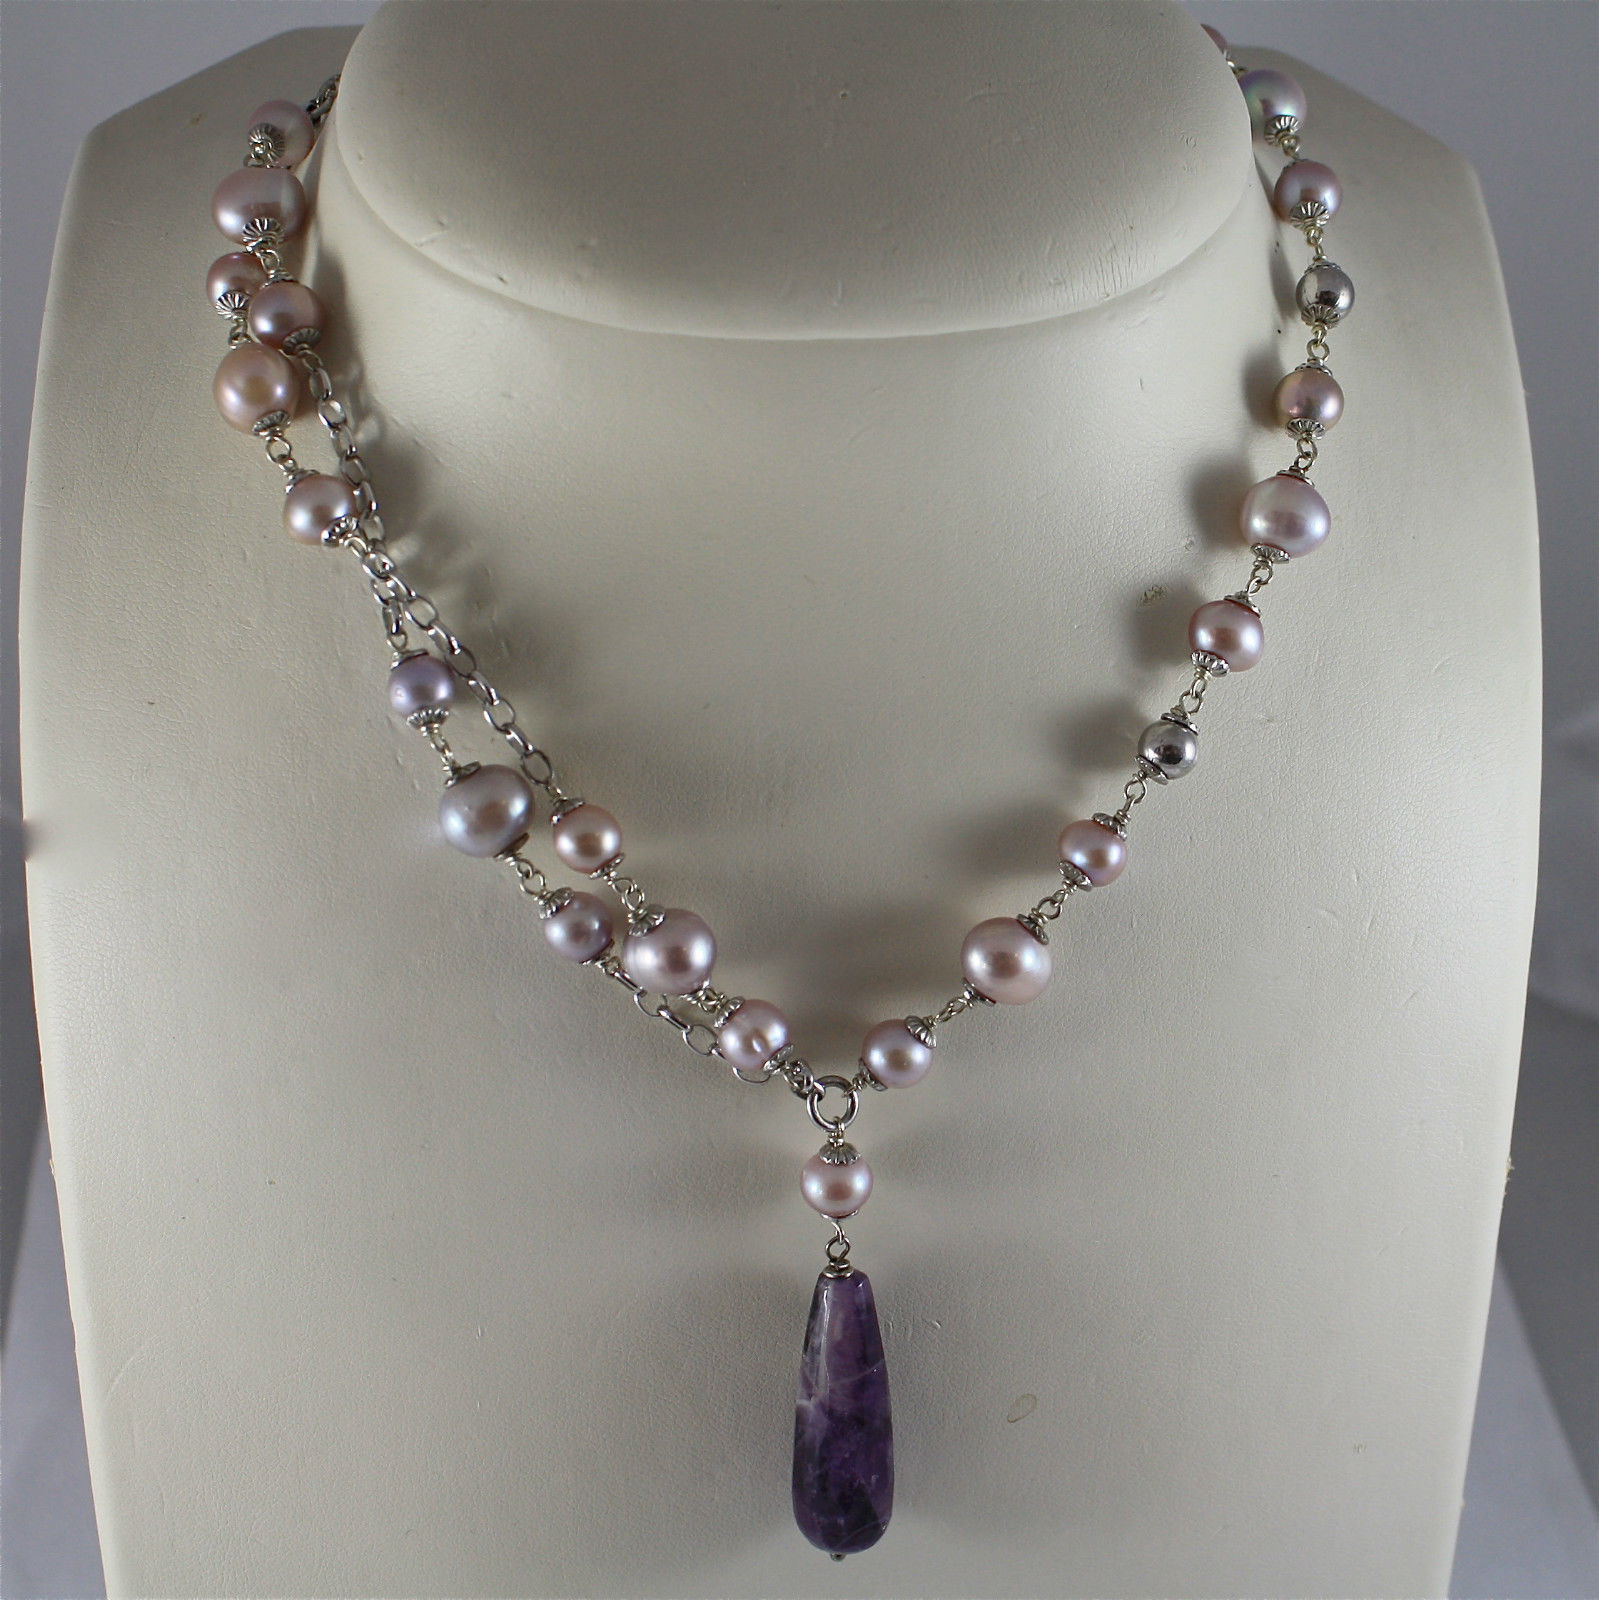 .925 RHODIUM SILVER NECKLACE, PURPLE AND ROSE PEARLS, AMETHYST PENDANT.